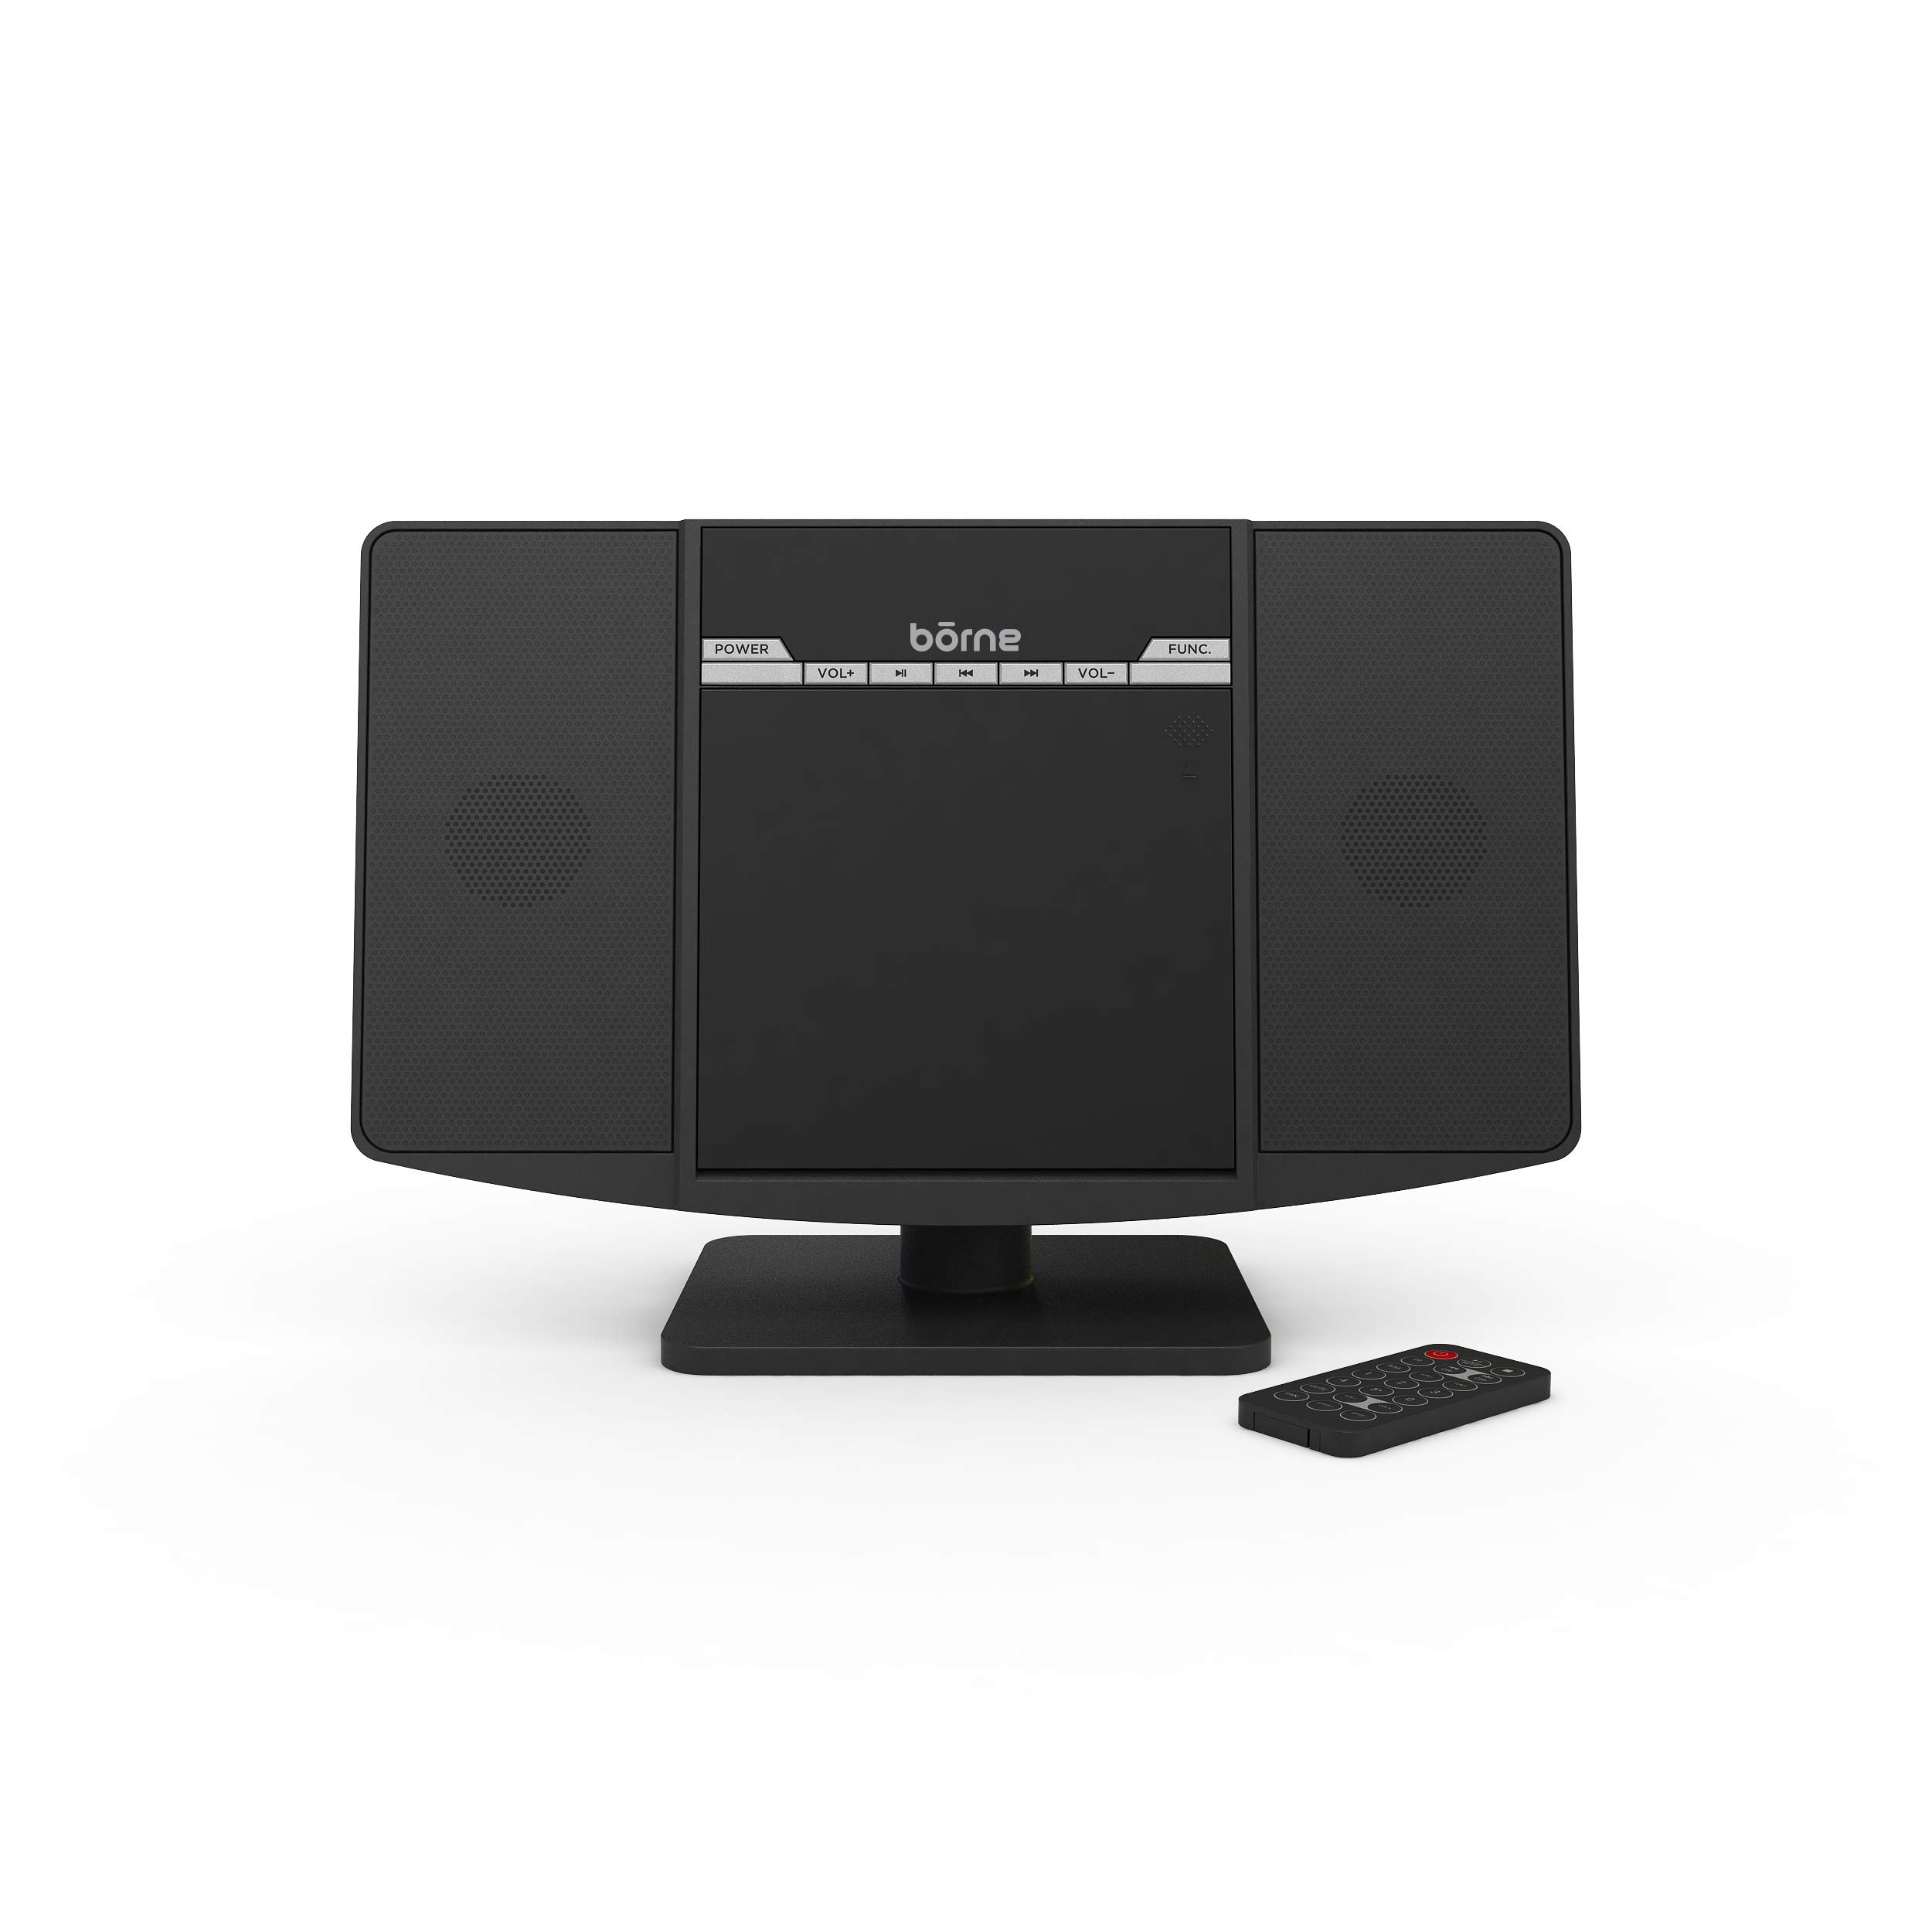 Borne Vertical CD Micro System with FM Radio Bluetooth Compatible by Borne